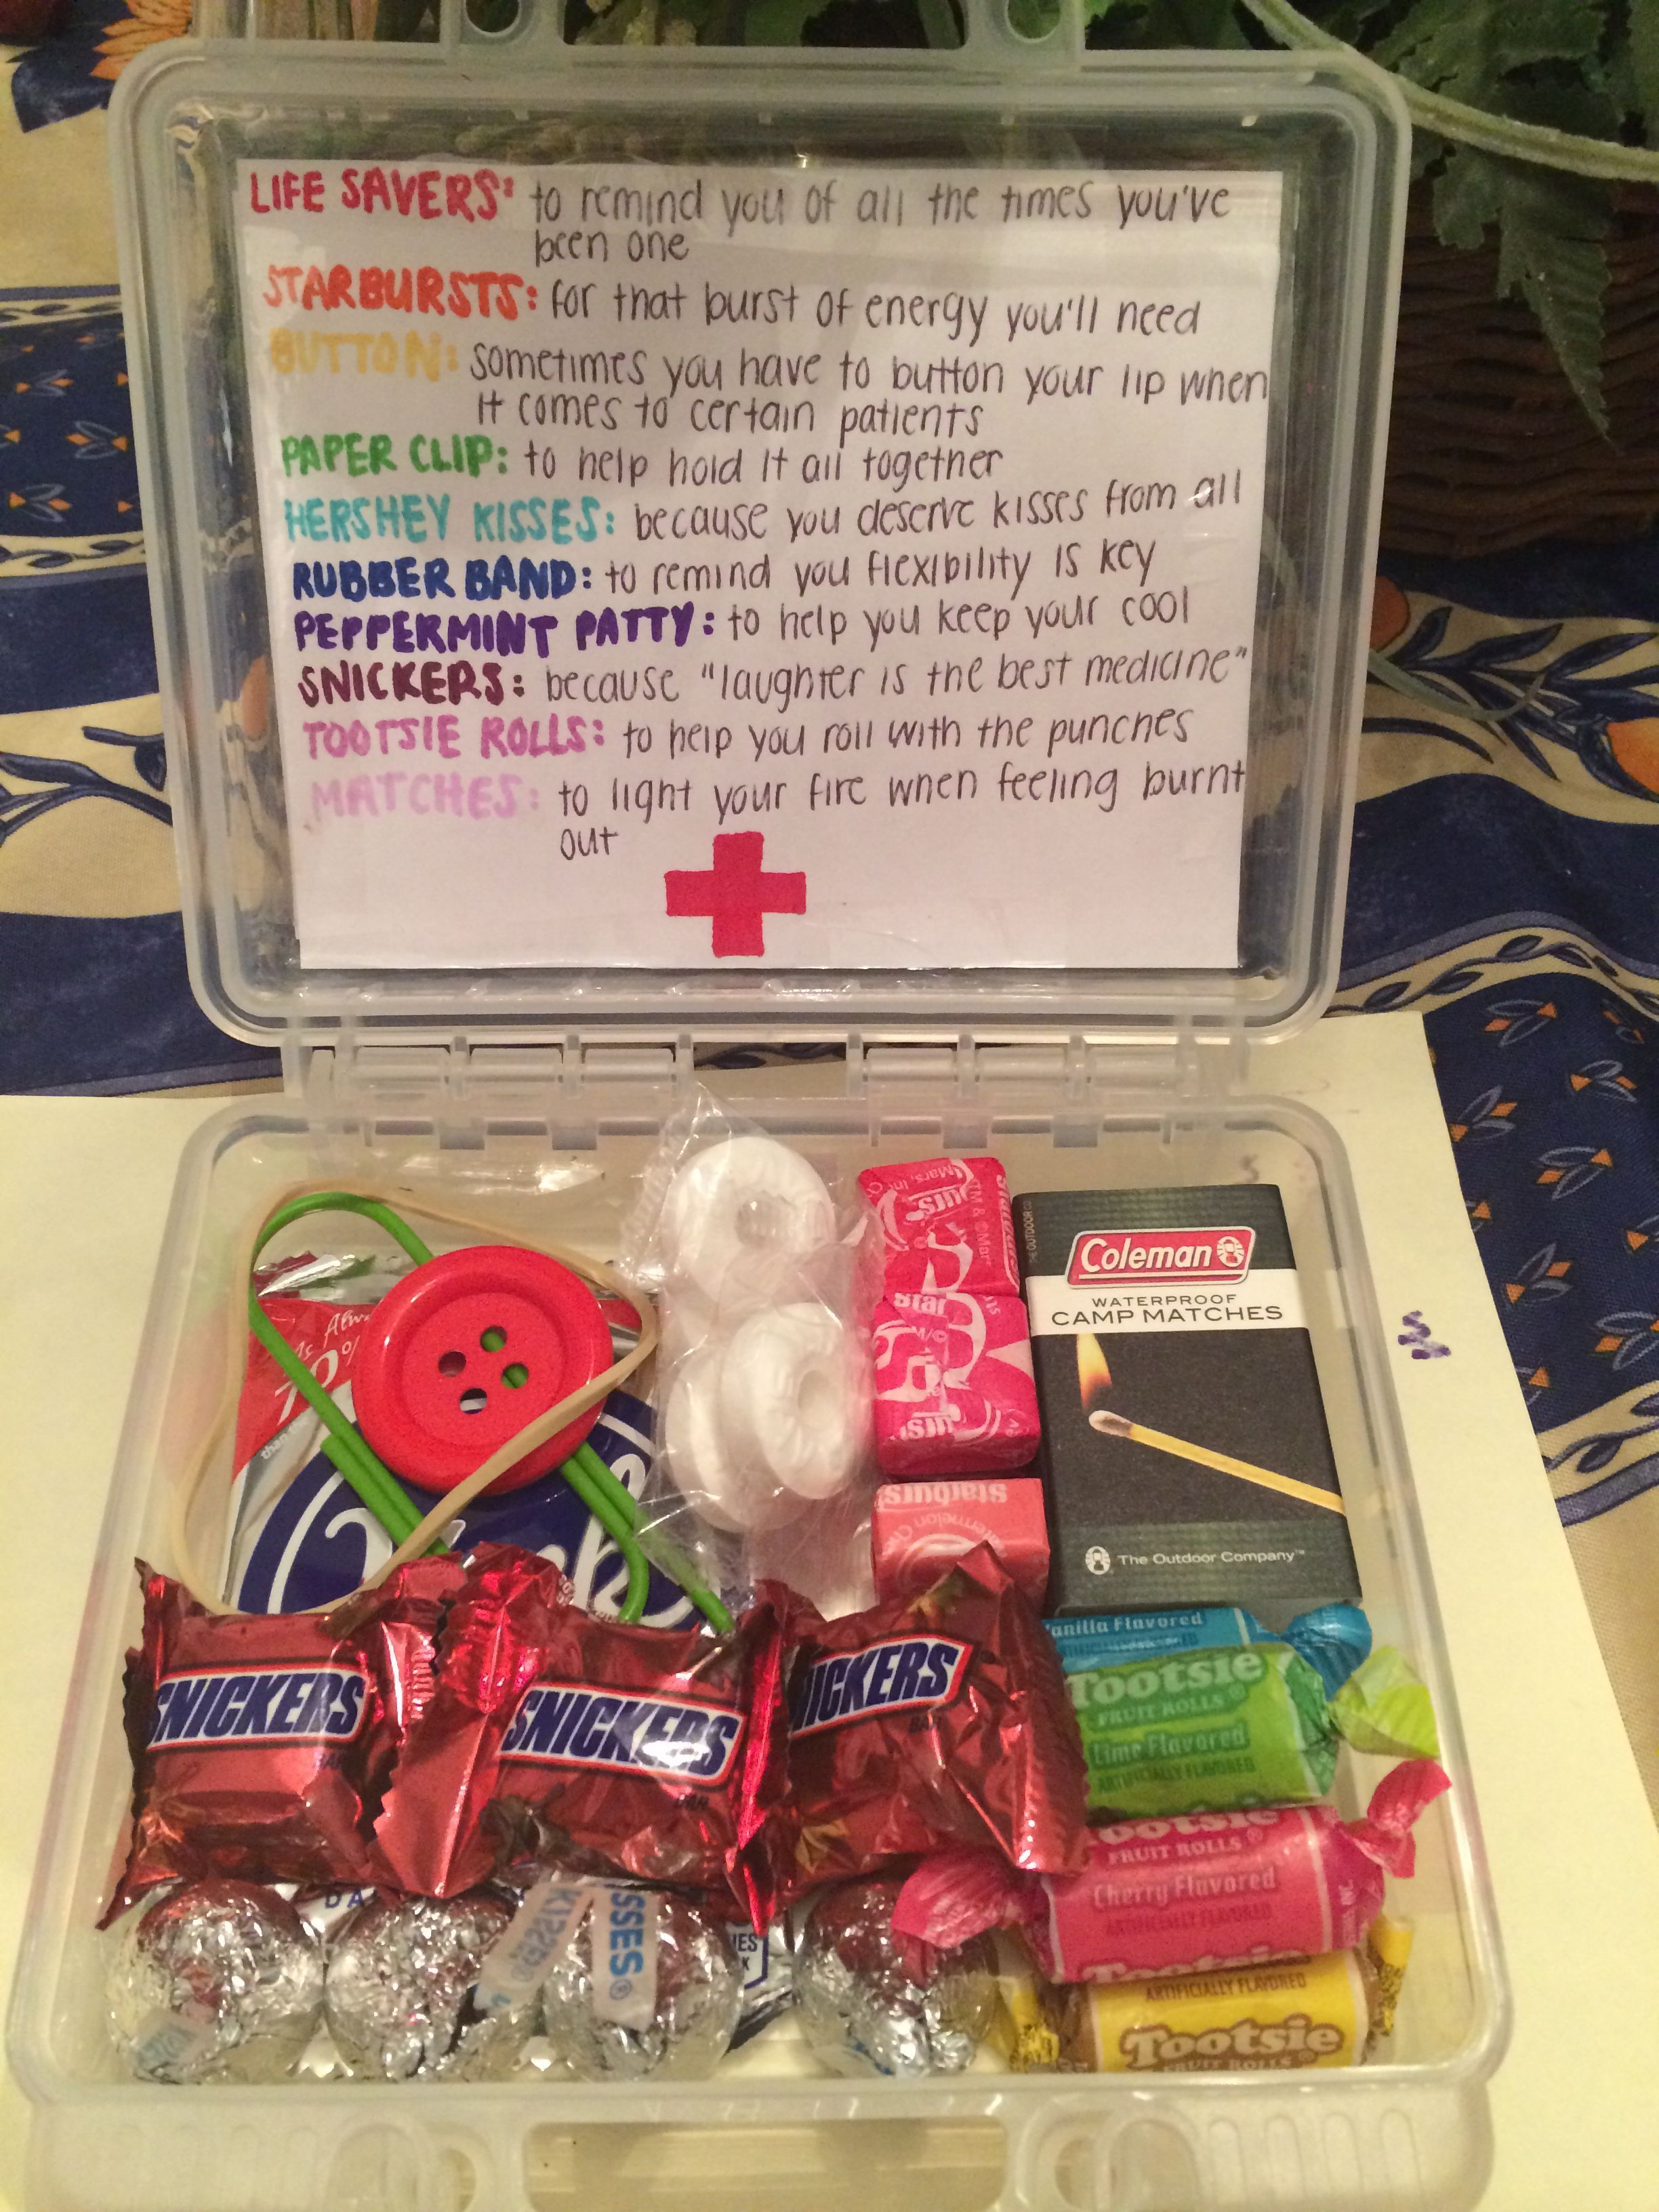 Doctor Survival Kit This Was A Super Cute Gift My Daughter And I Made For My Dad Who S A Doctor Survival Kit Gifts Creative Diy Gifts Doctor Gifts